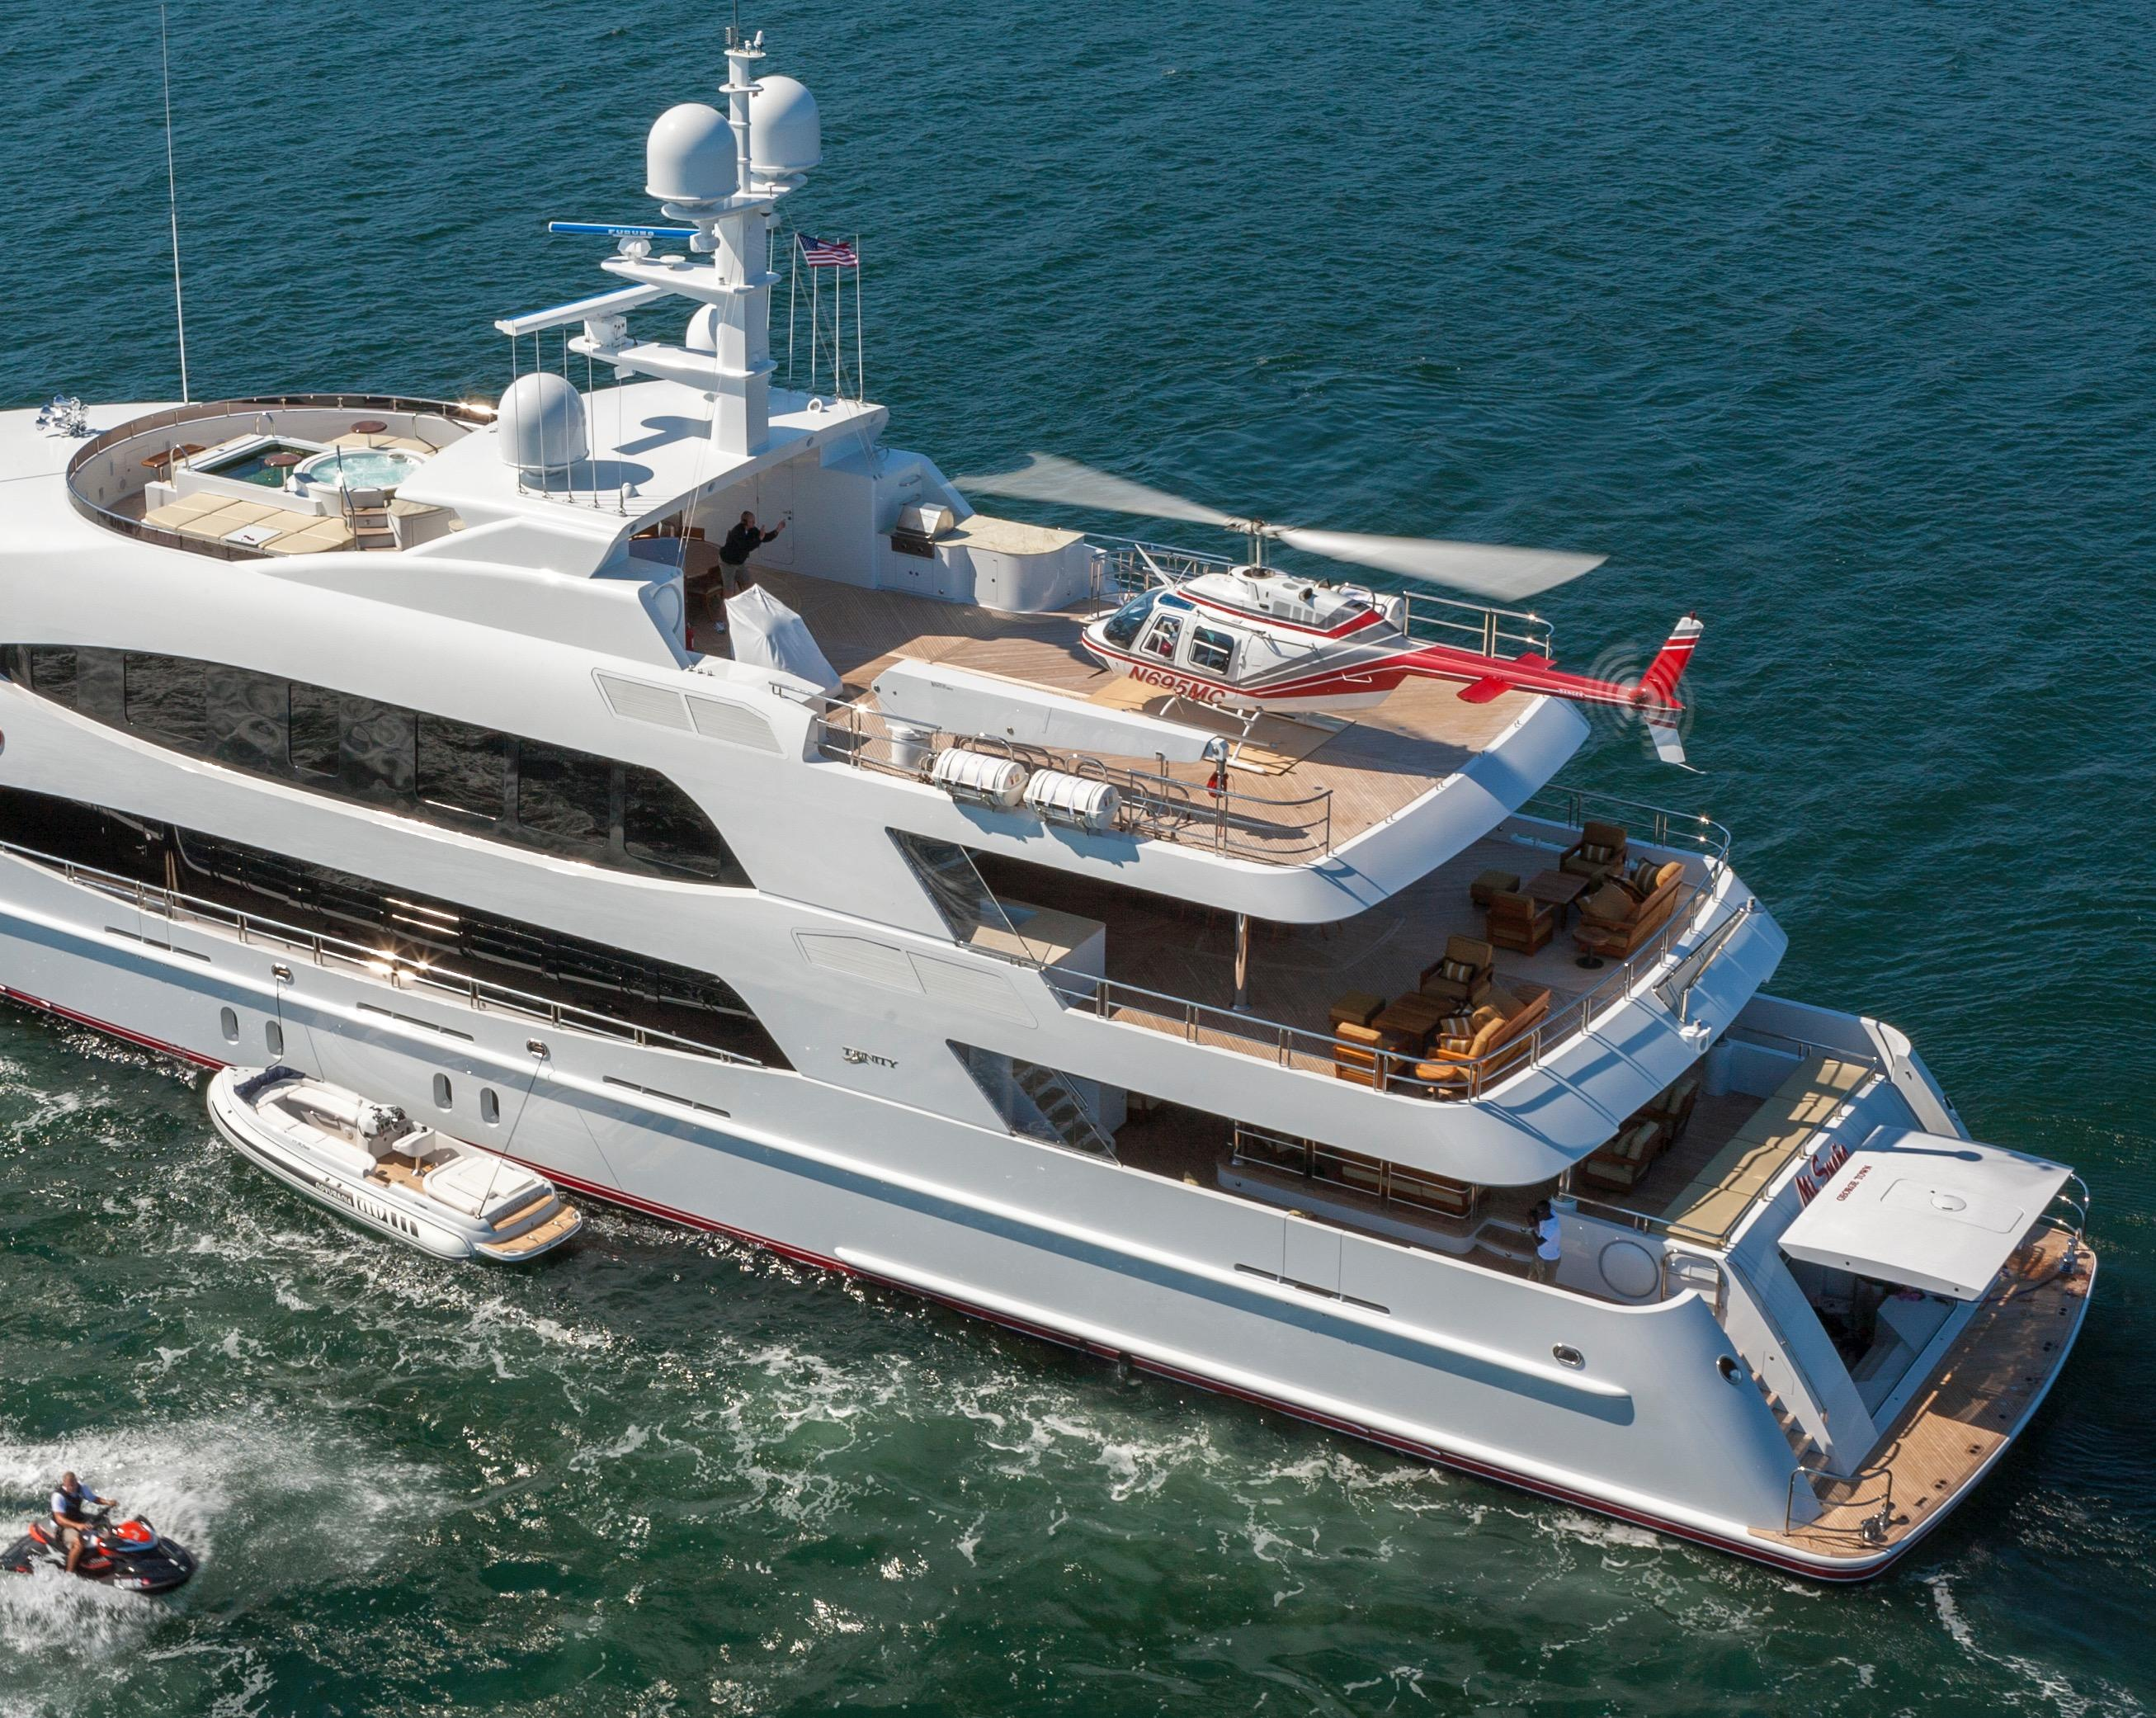 Yacht Skyfall By Trinity - Aft Deck With Helicopter